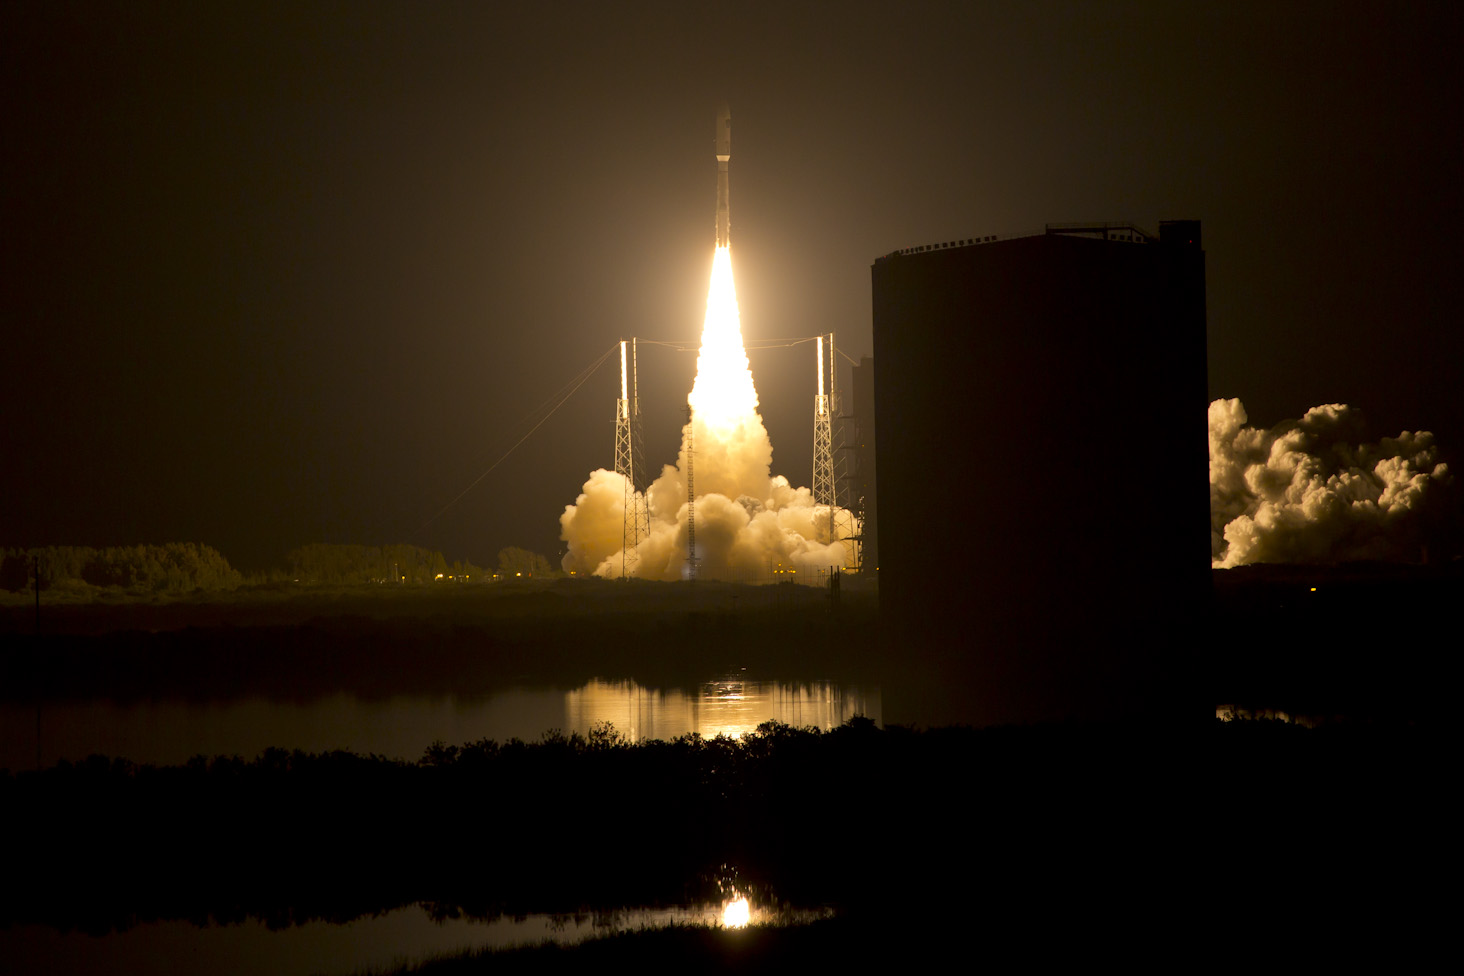 The MUOS-3 satellite launched on Jan. 20, 2014. US Navy Photo